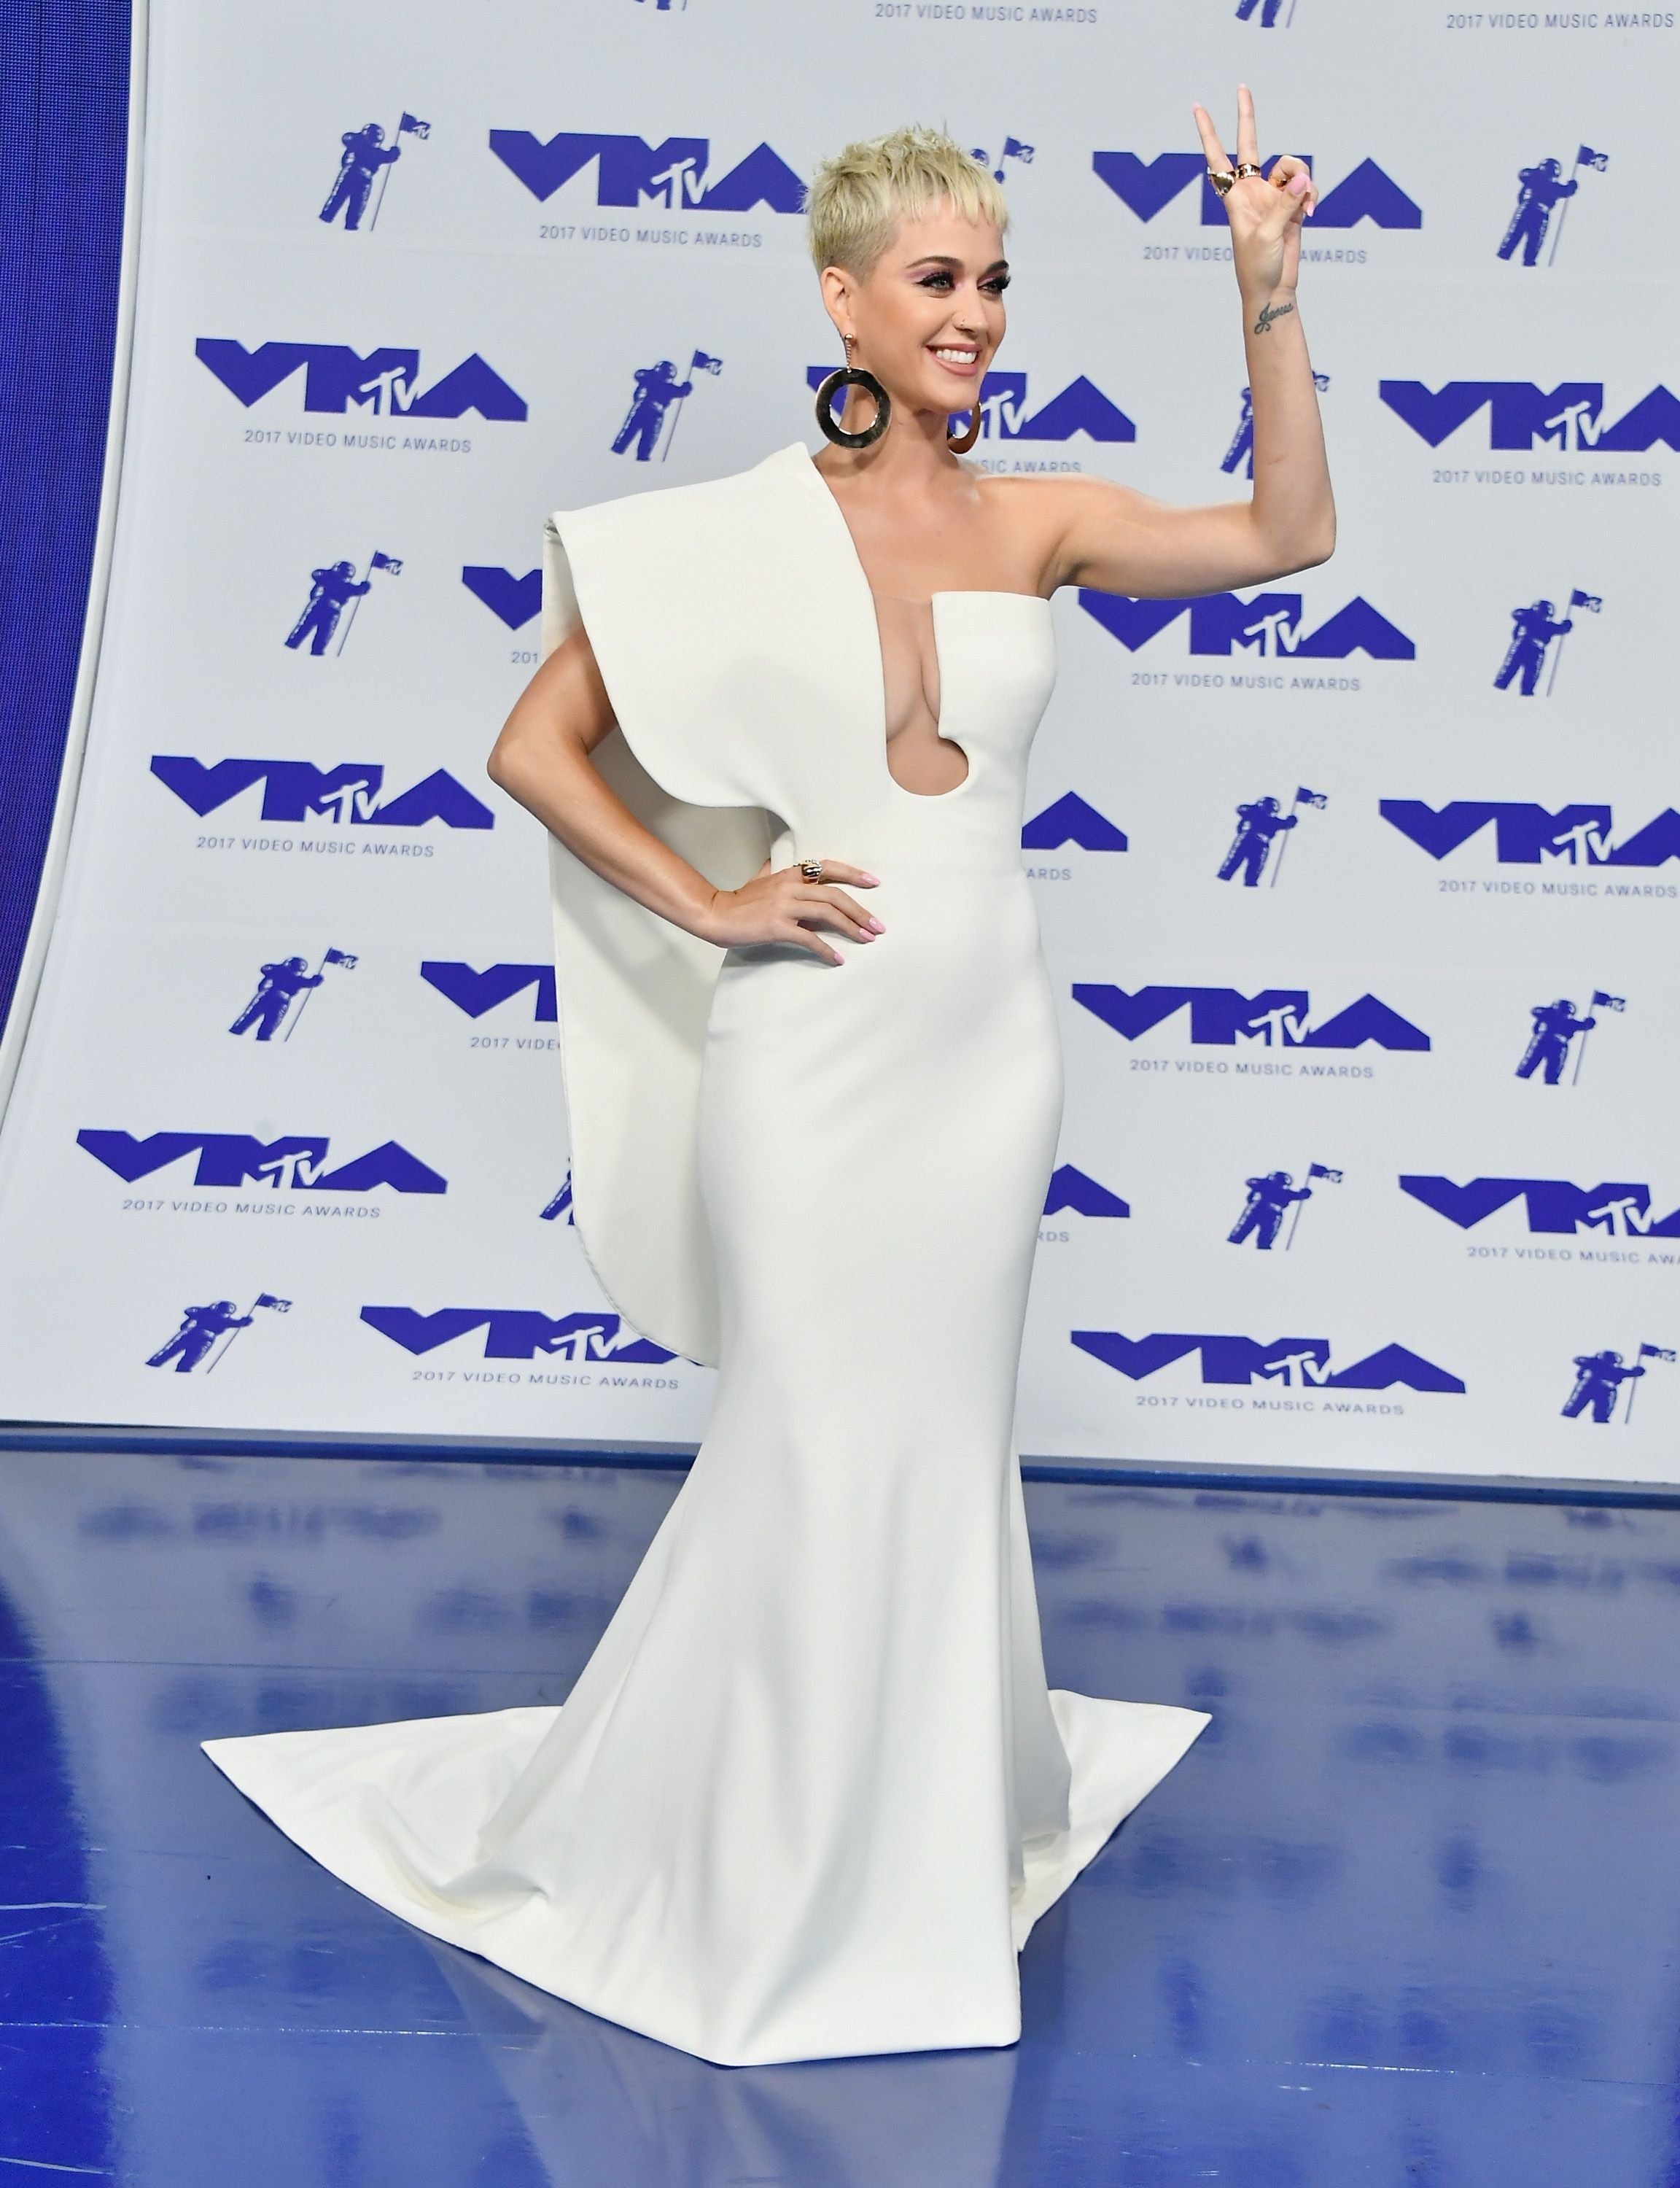 Katy Perry at the 2017 VMA awards  Photo: Getty Images